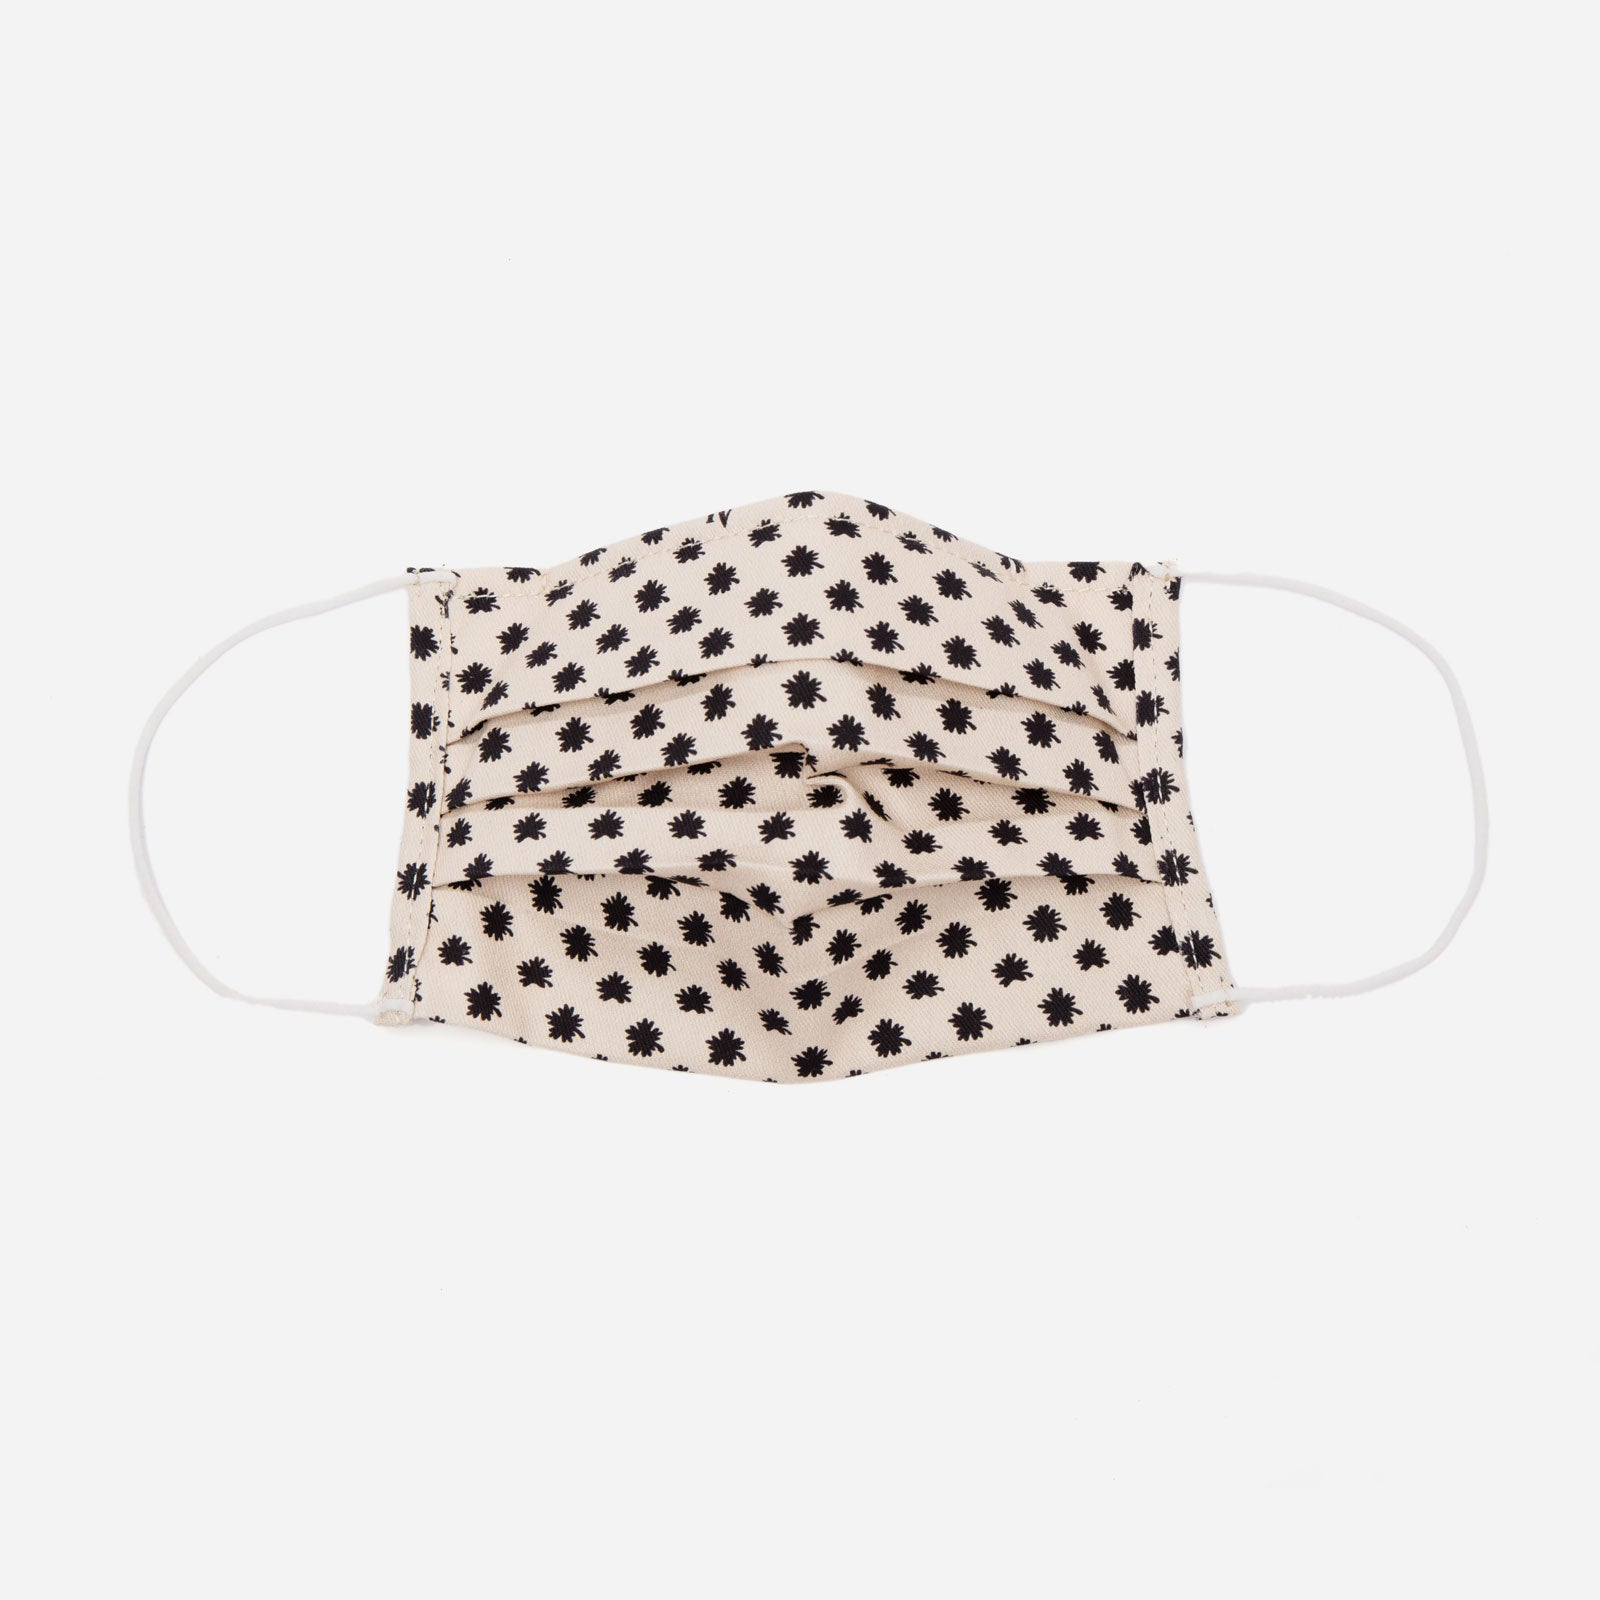 Folded Mask Asterisk Dot Print Black